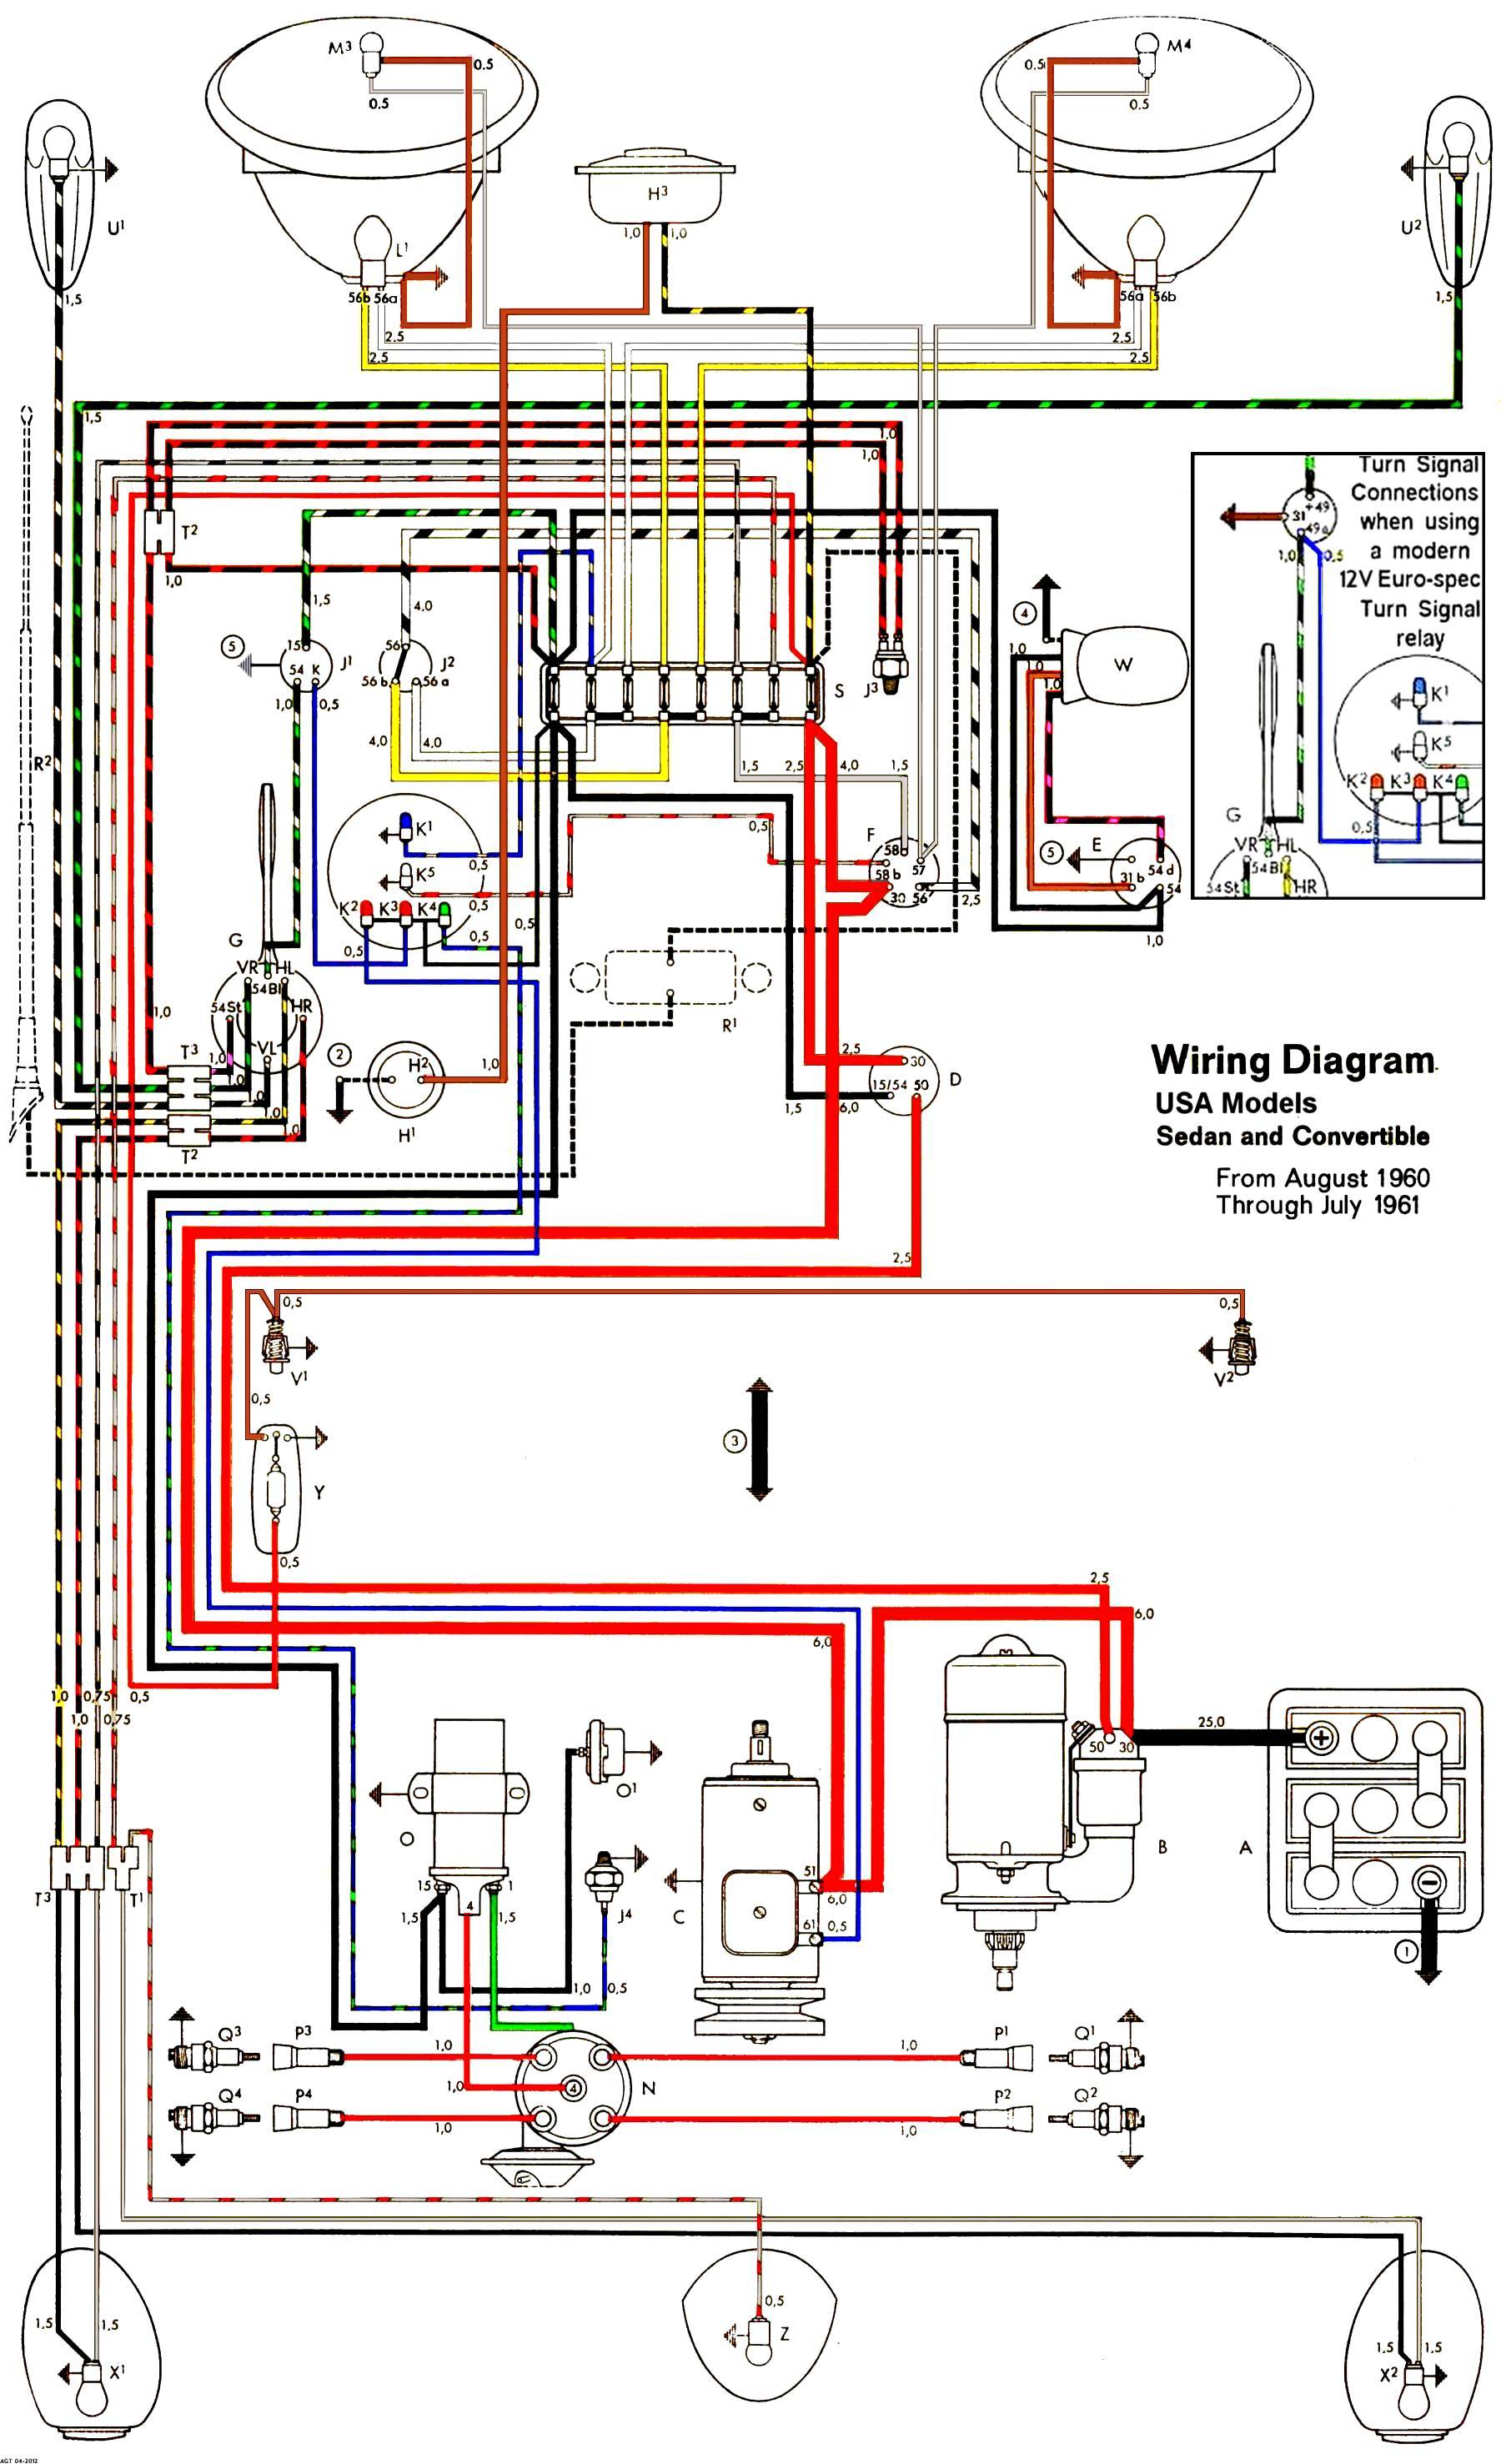 1970 beetle wiring diagram plant cell parts color 74 mopar alternator get free image about